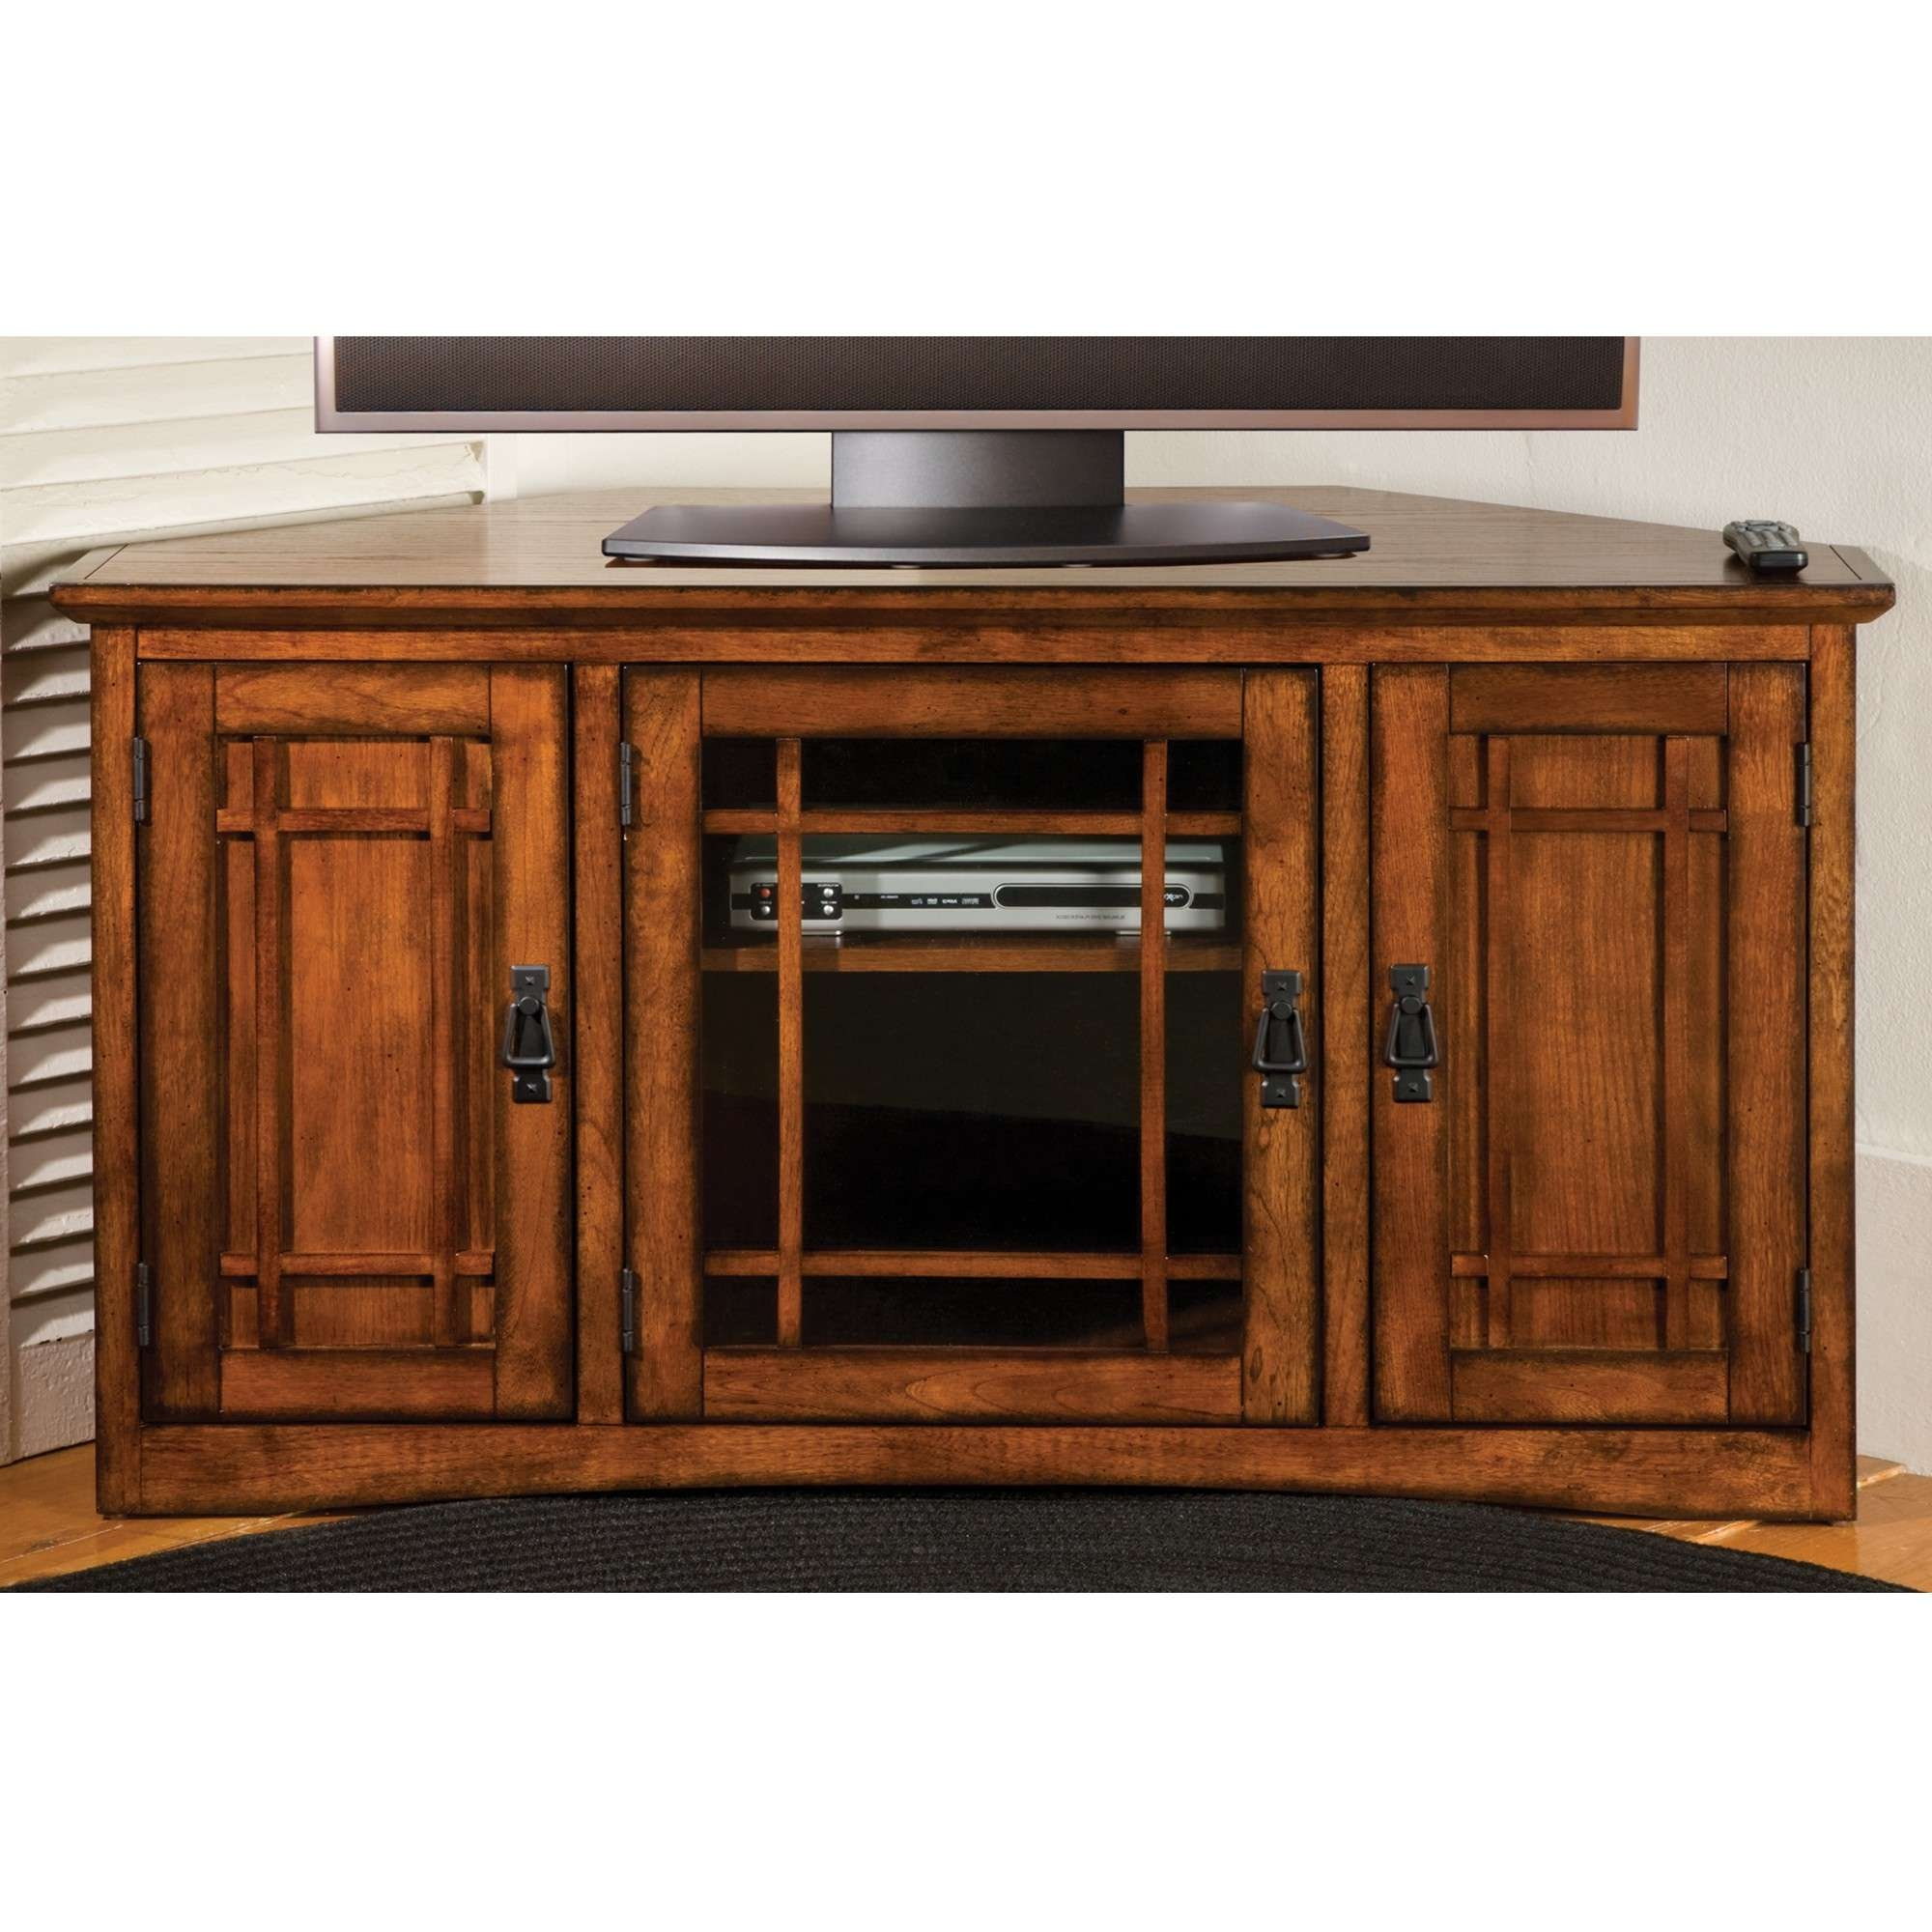 Mission Corner Tv Cabinet | Sturbridge Yankee Workshop For Wooden Corner Tv Stands (View 5 of 15)